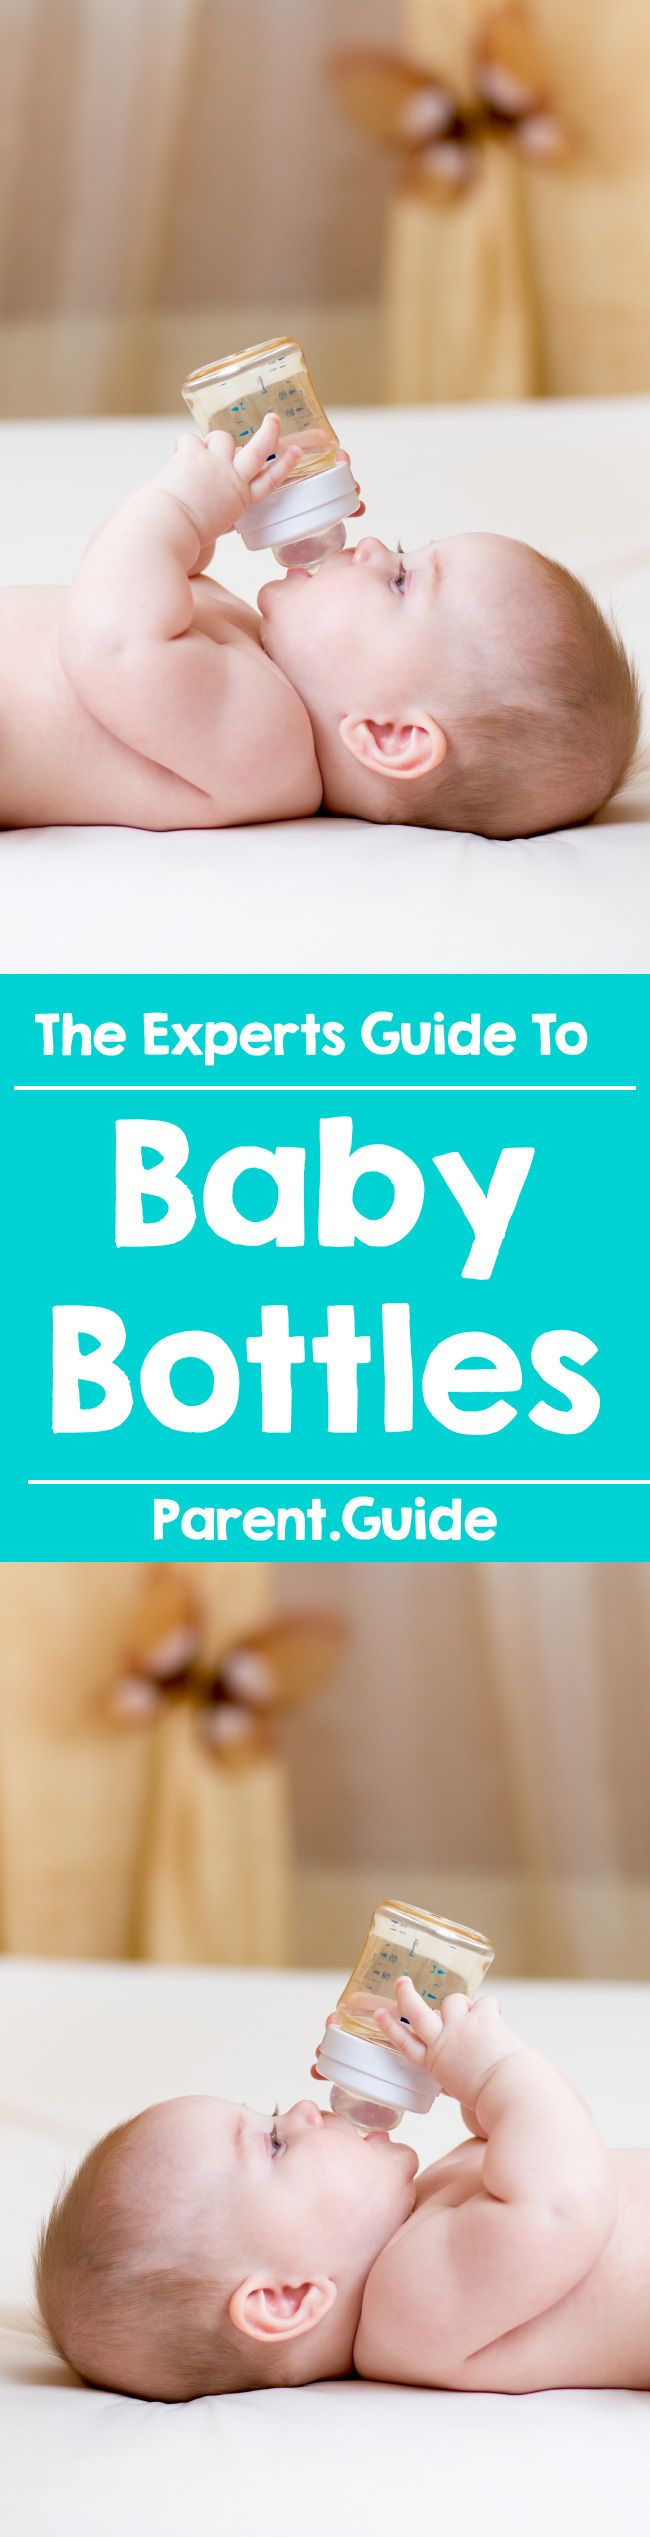 The only baby bottle guide you will ever need.  We explore everything from the bottle itself to the nipple and material it's made from and which is best for you (glass, plastic or stainless steel). We even take a look at some of the best baby bottles on the market and what makes them so great whether it's preventing colic or reducing nipple confusion in breast fed babies. Be warned; this guide is long and awesome! By the time you have finished reading you will be a baby bottle expert